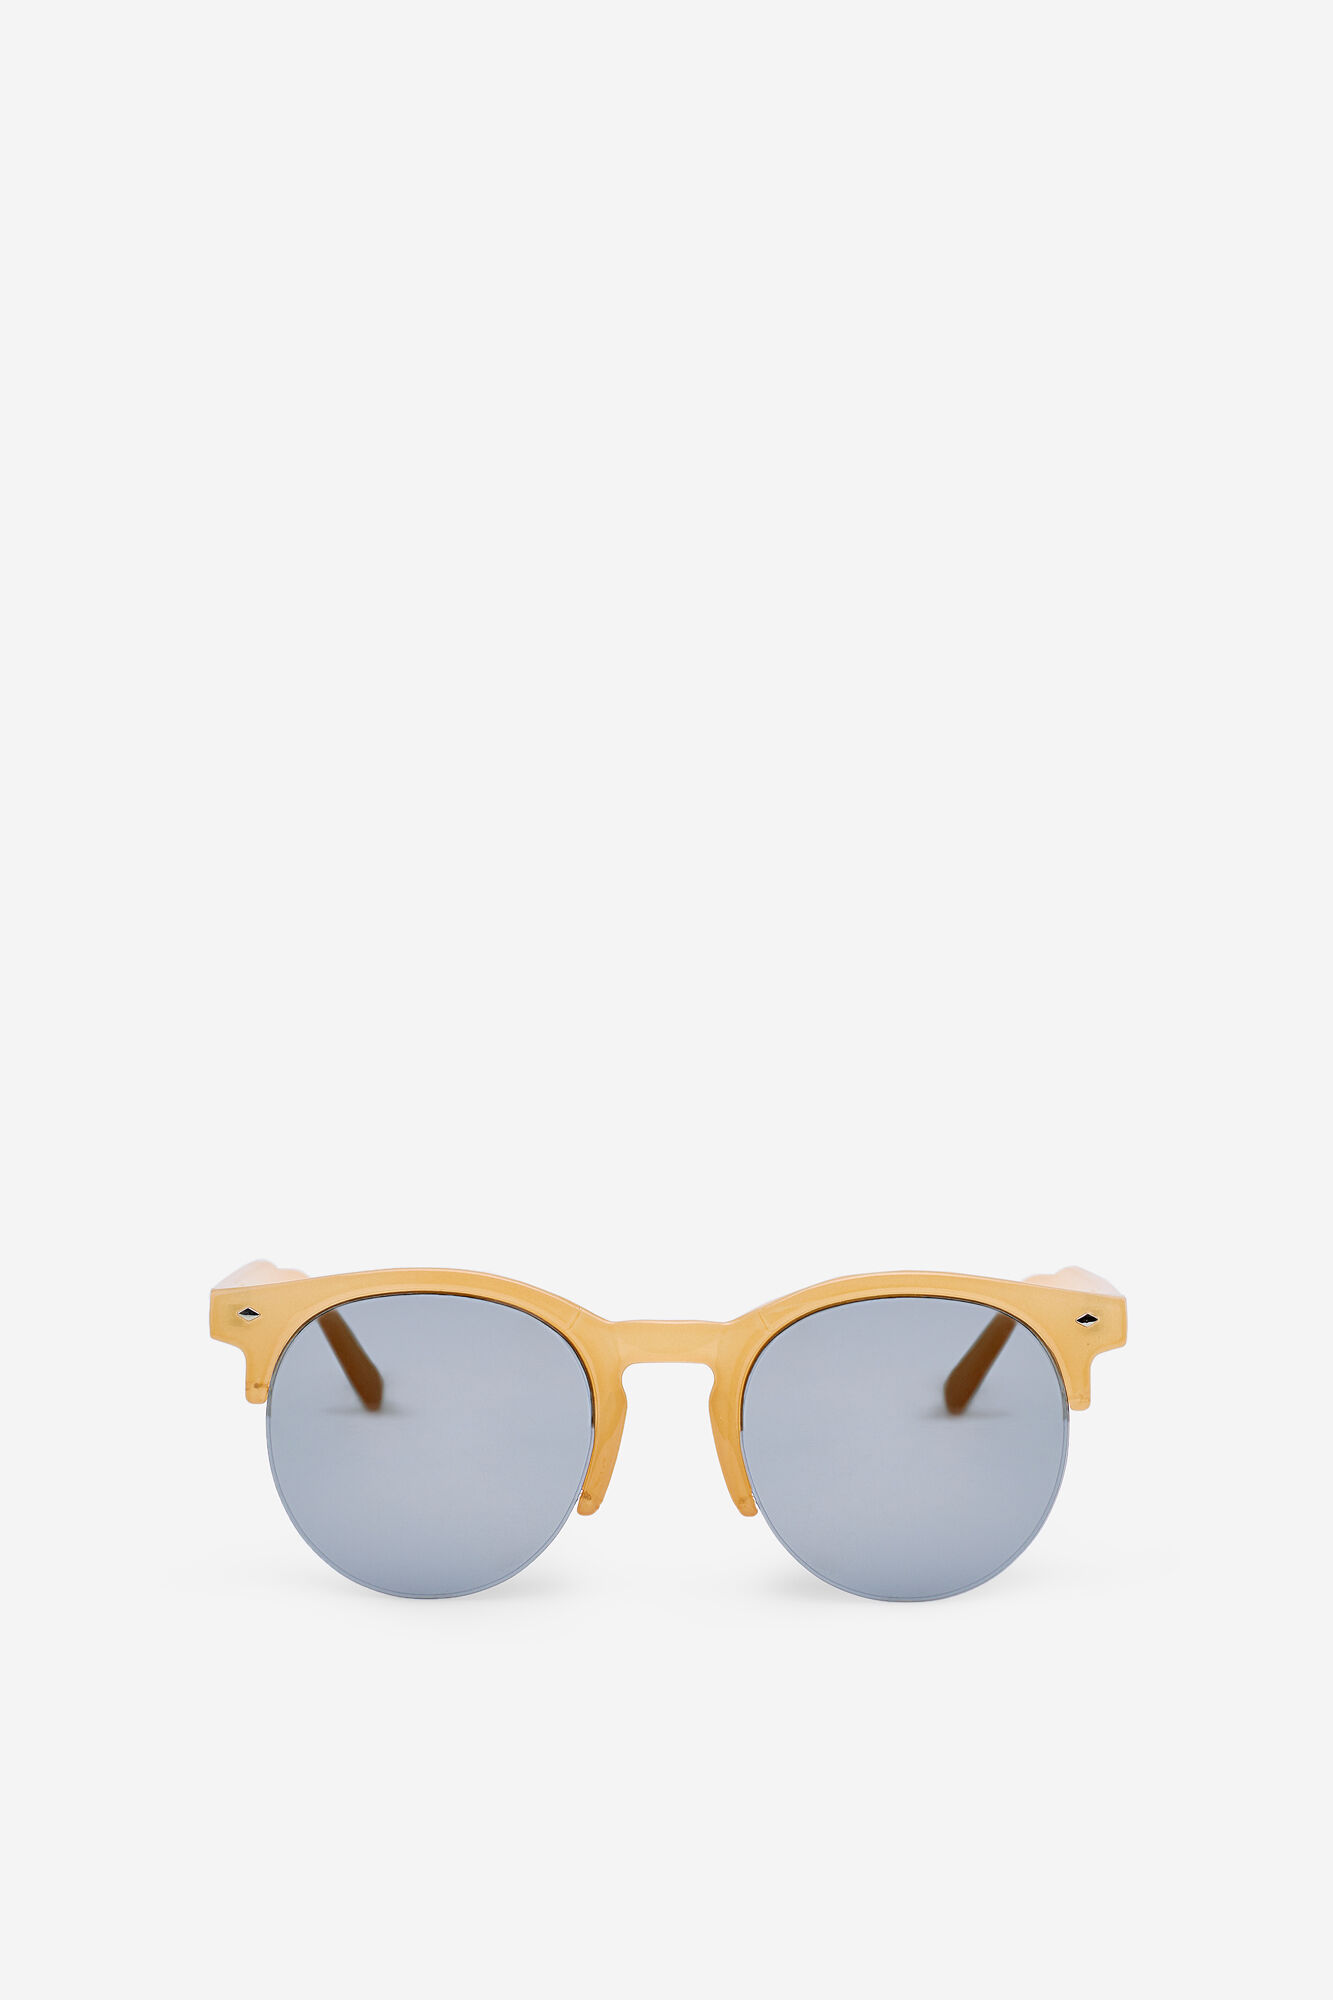 Semi-frameless sunglasses | Jewellery | Women\'secret